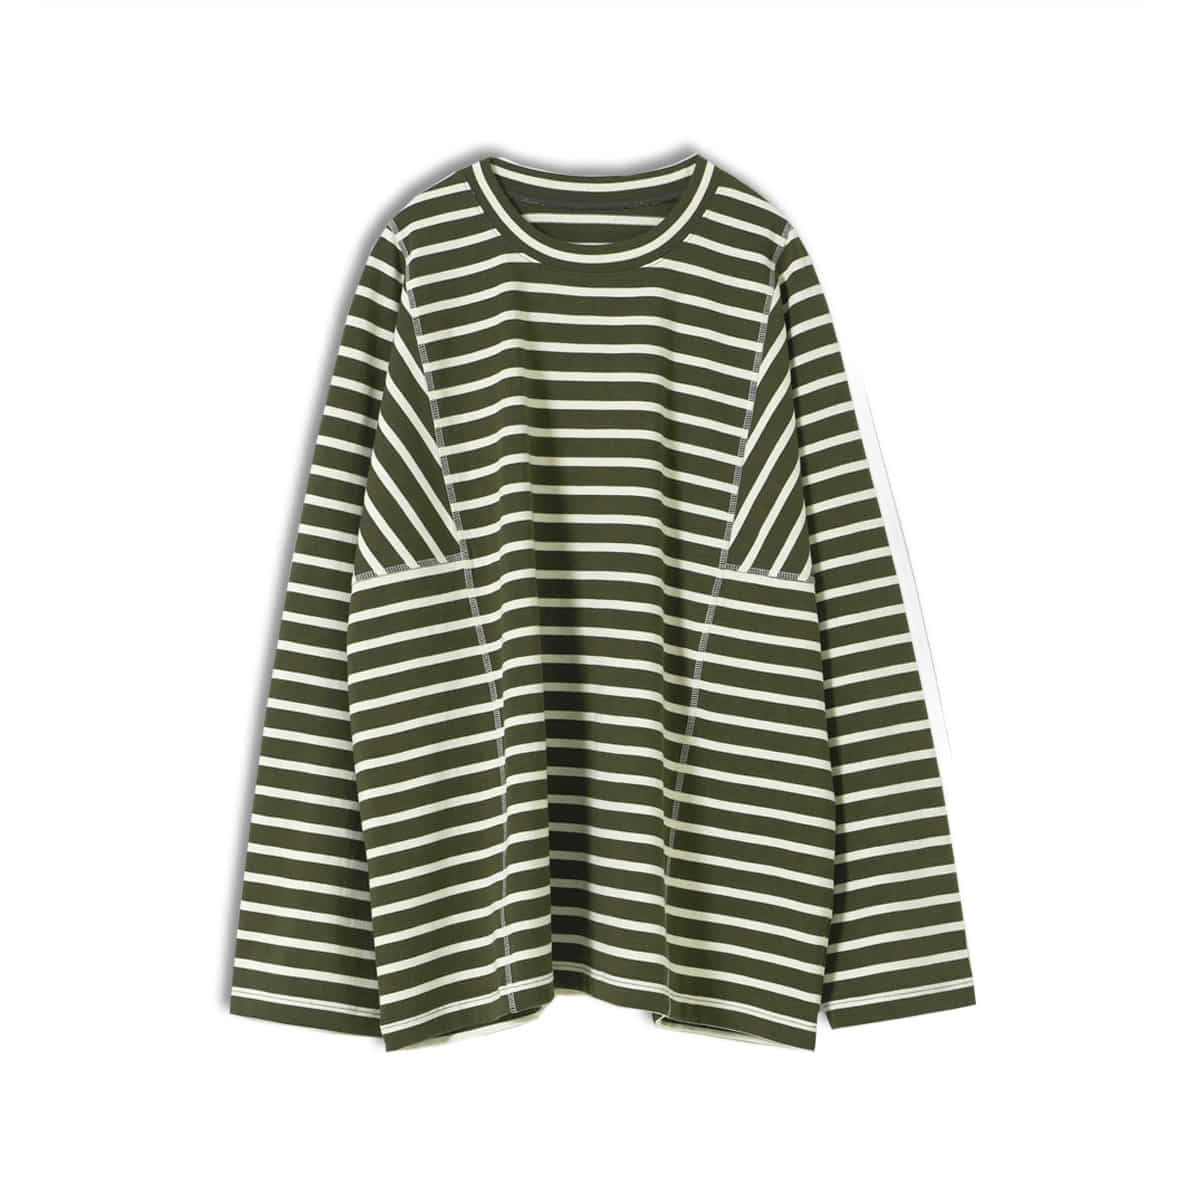 [YOUTH] STRUCTURED T-SHIRT 'OLIVE/IVORY'